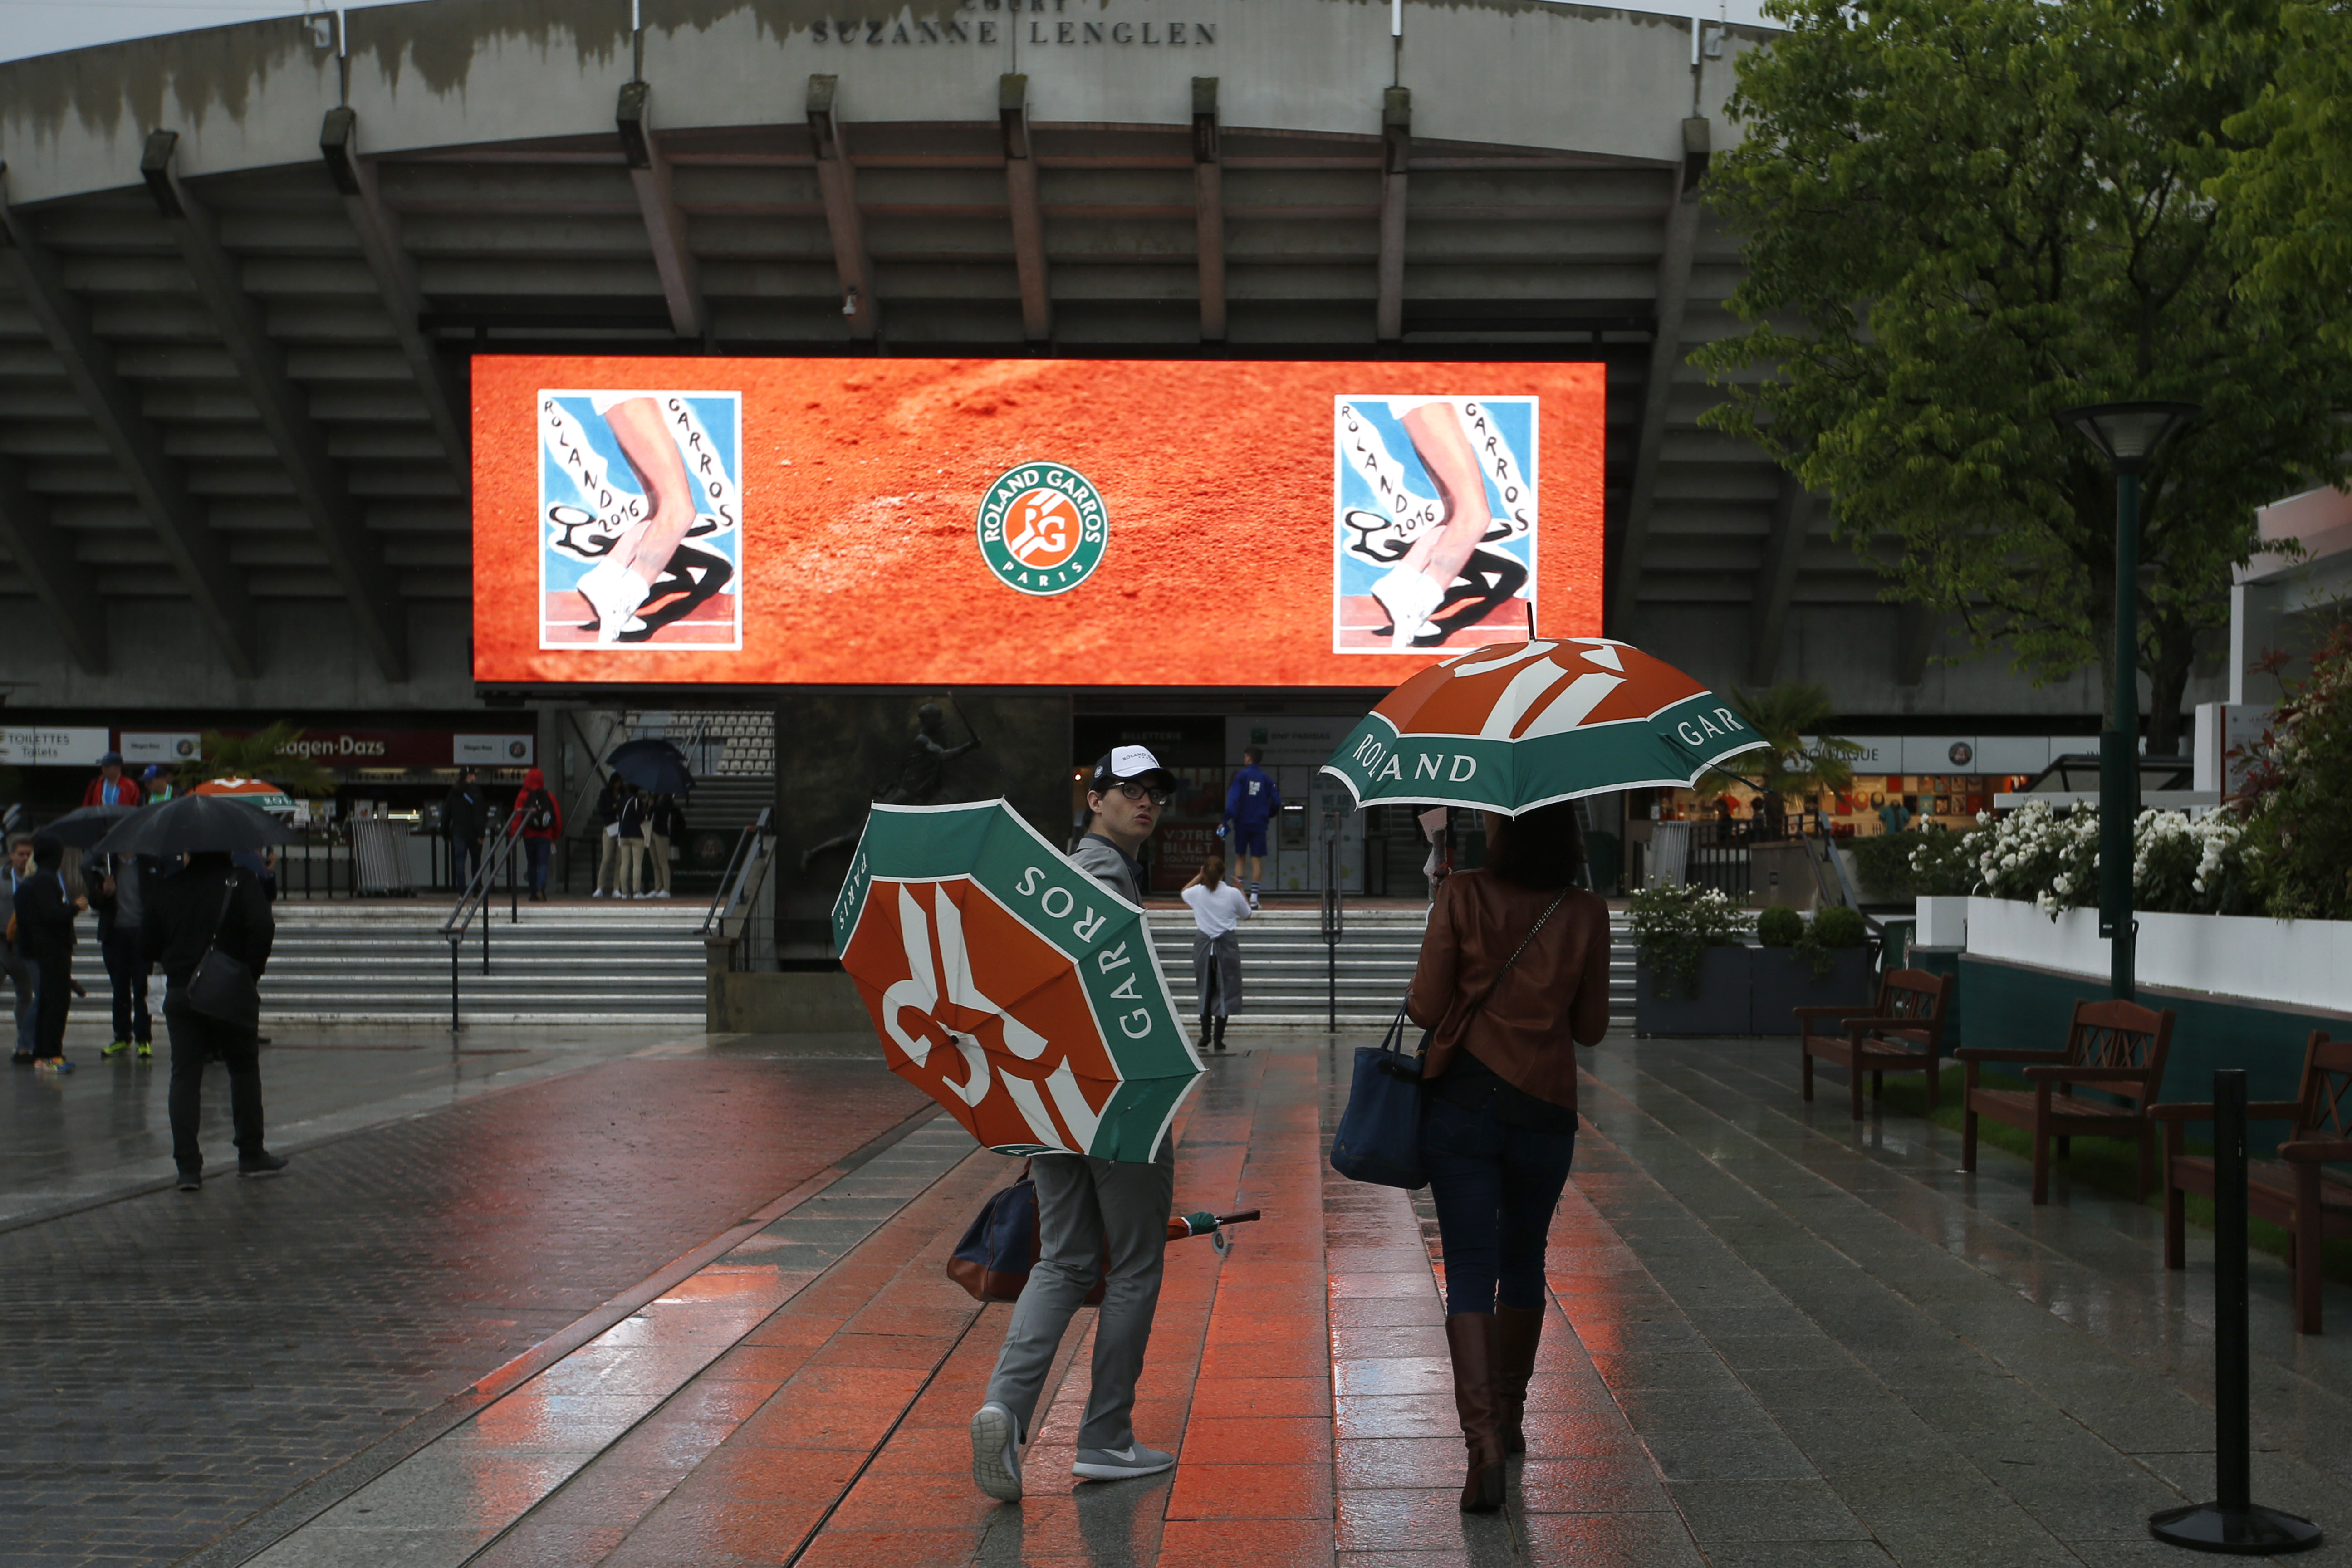 People stroll under umbrellas in the alleys of the Roland Garros stadium before the first round matches of the French Open tennis tournament, Sunday, May 22, 2016 in Paris.  (AP Photo/Alastair Grant)